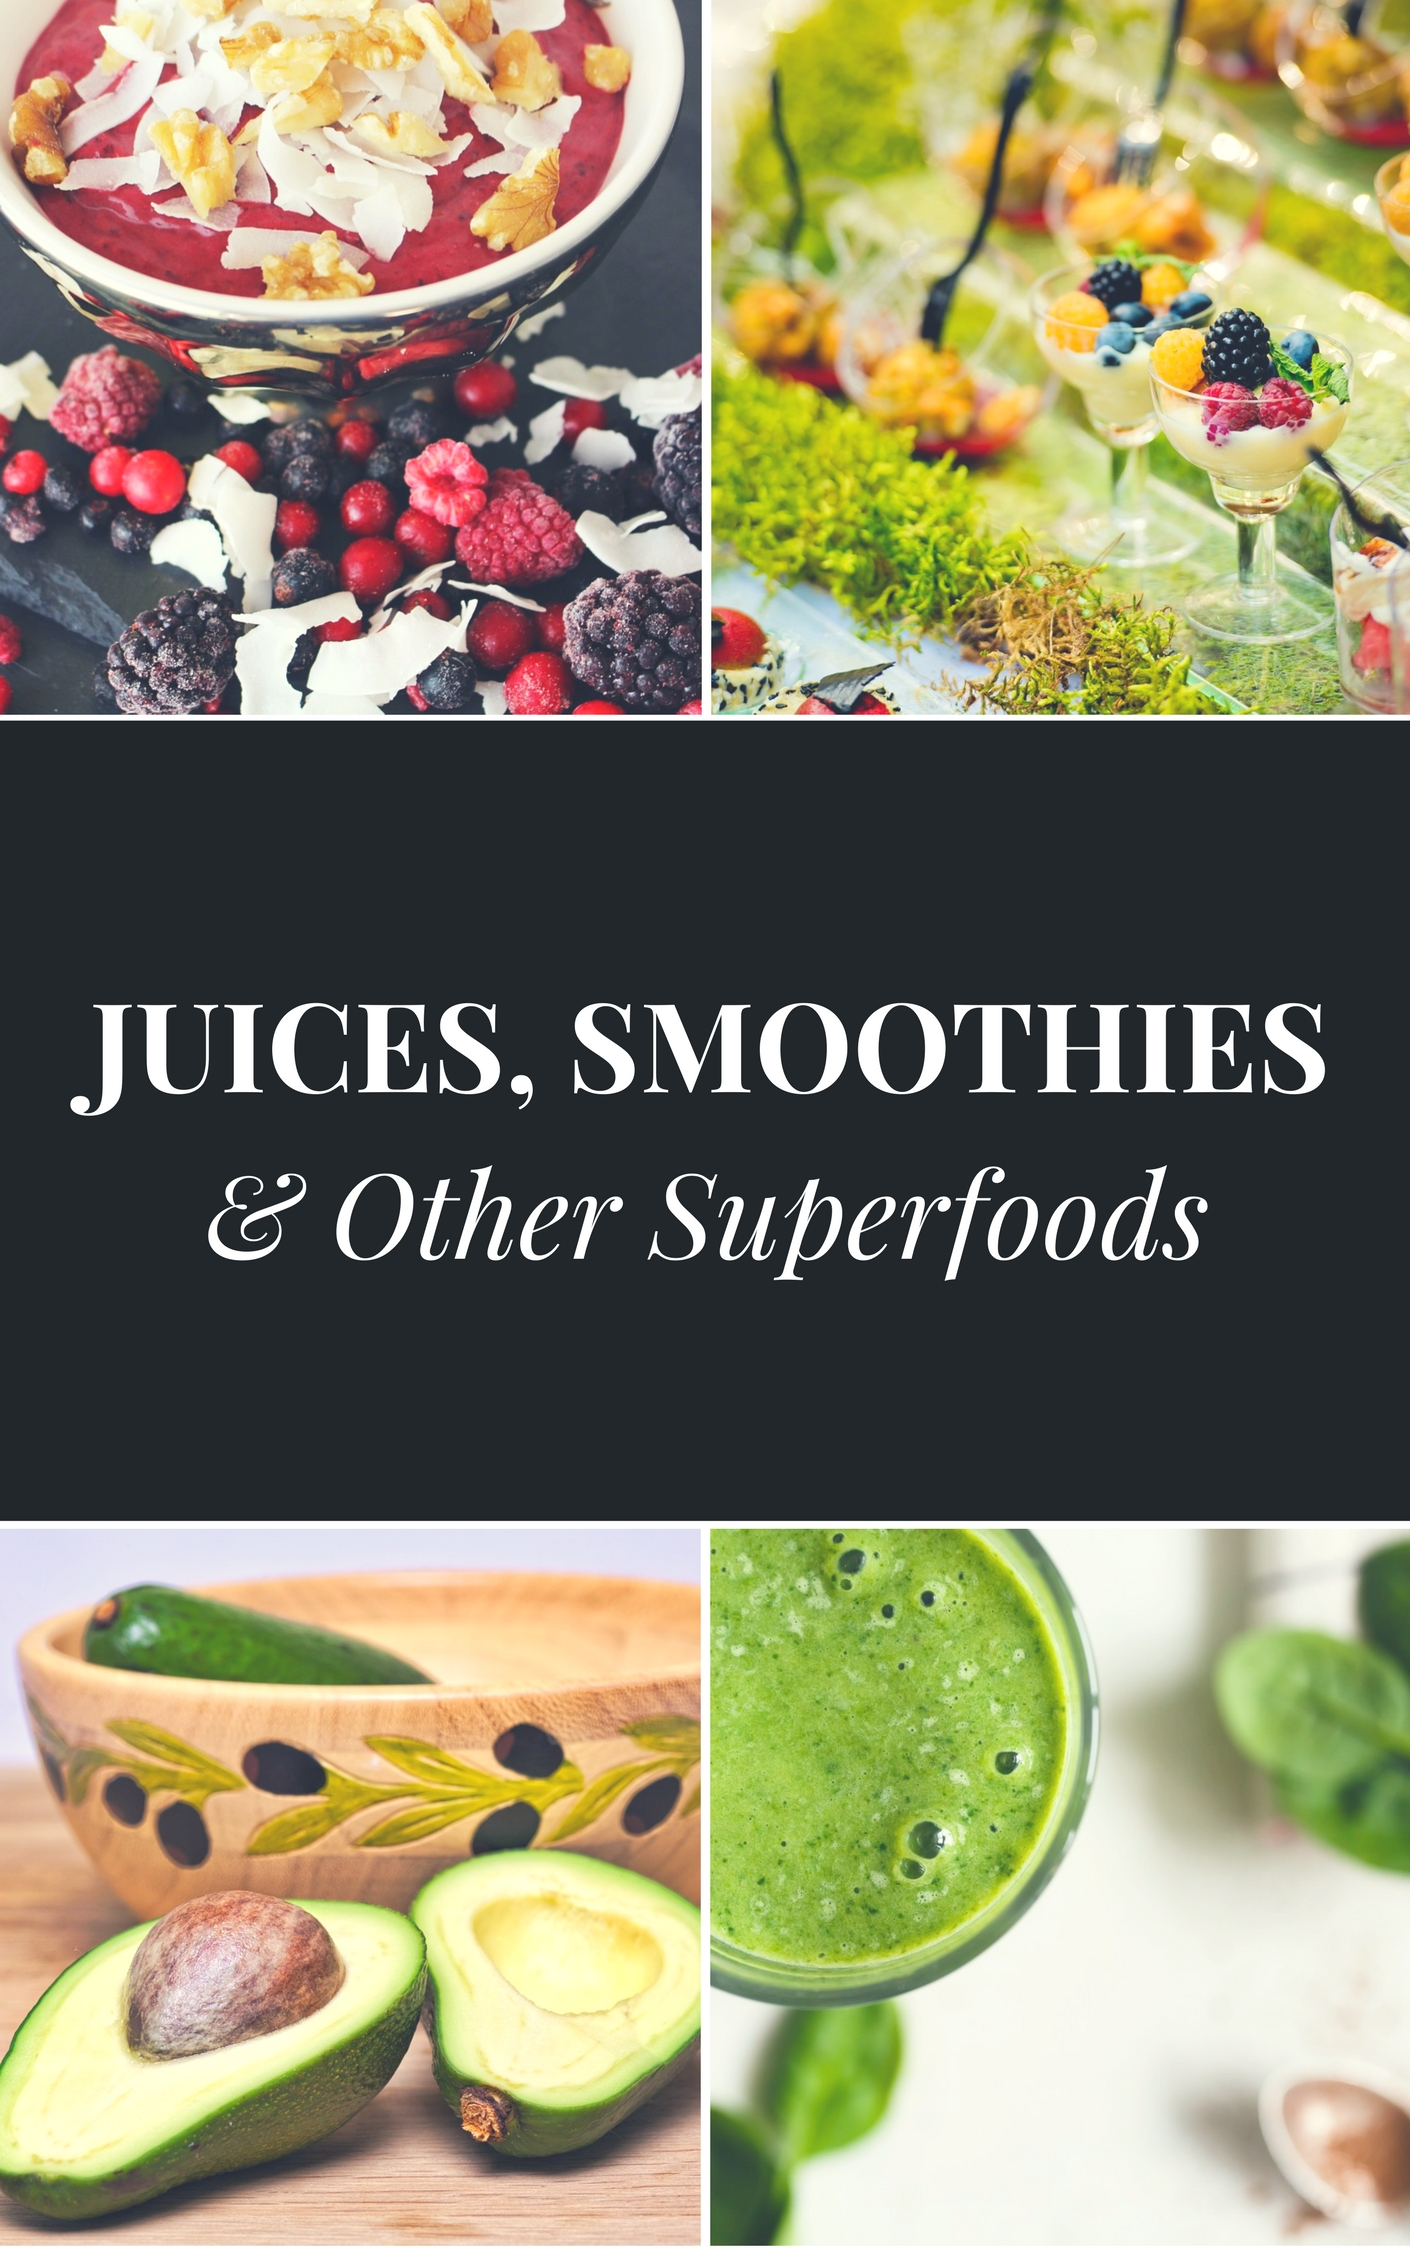 40 Juice, Smoothie, and Superfood Recipes with Pict...